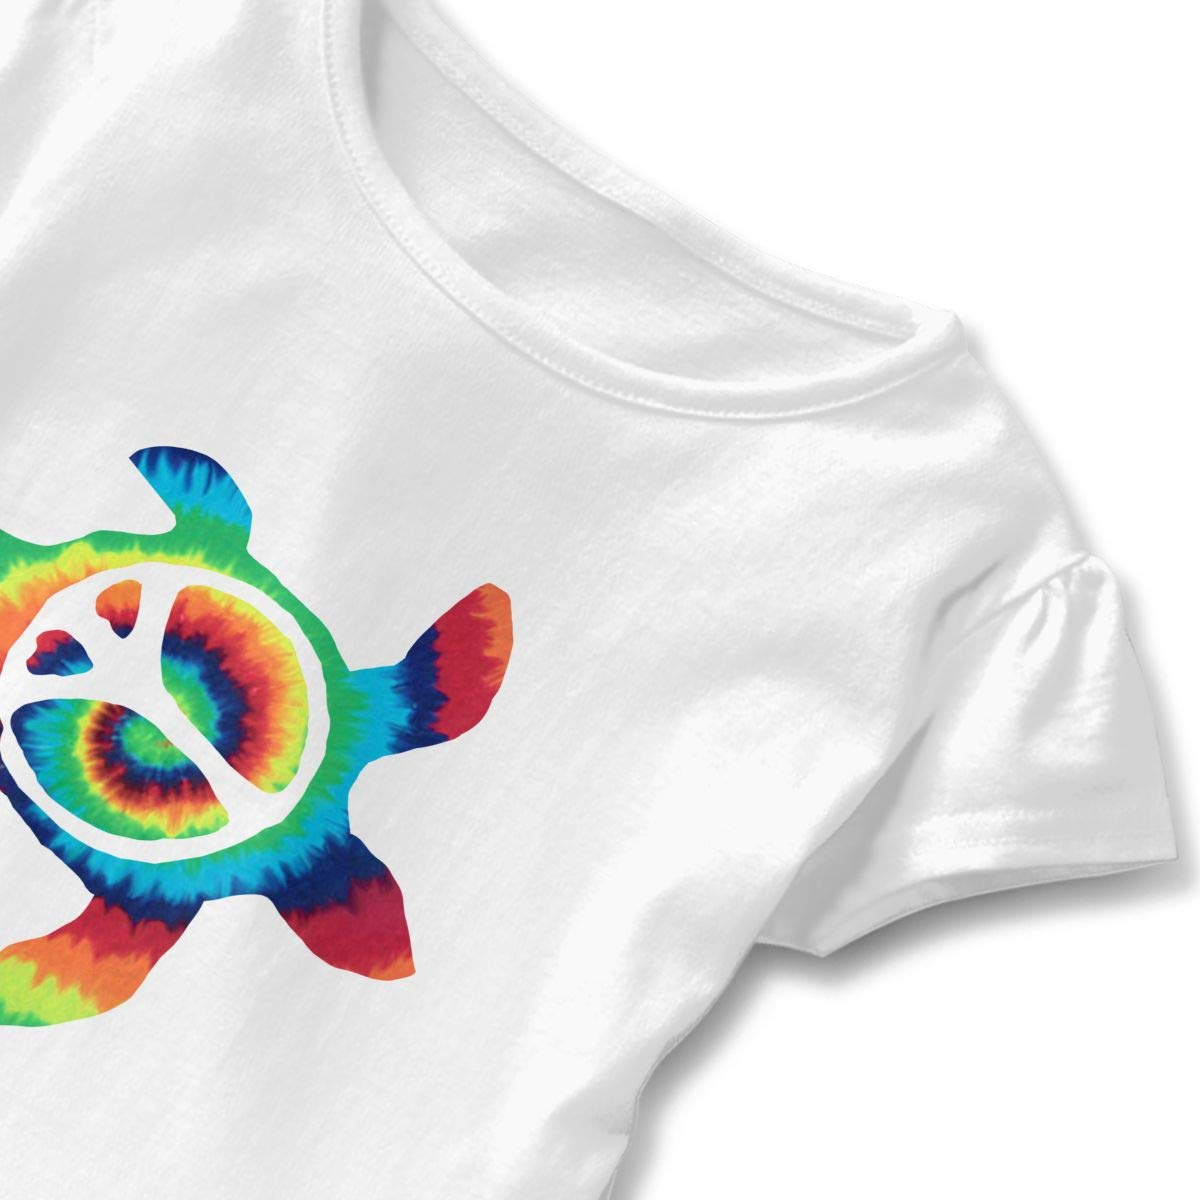 QUZtww Trippy-iphone-6-wallpaper-11642067 Toddler Baby Girl Basic Printed Ruffle Short Sleeve Cotton T Shirts Tops Tee Clothes White